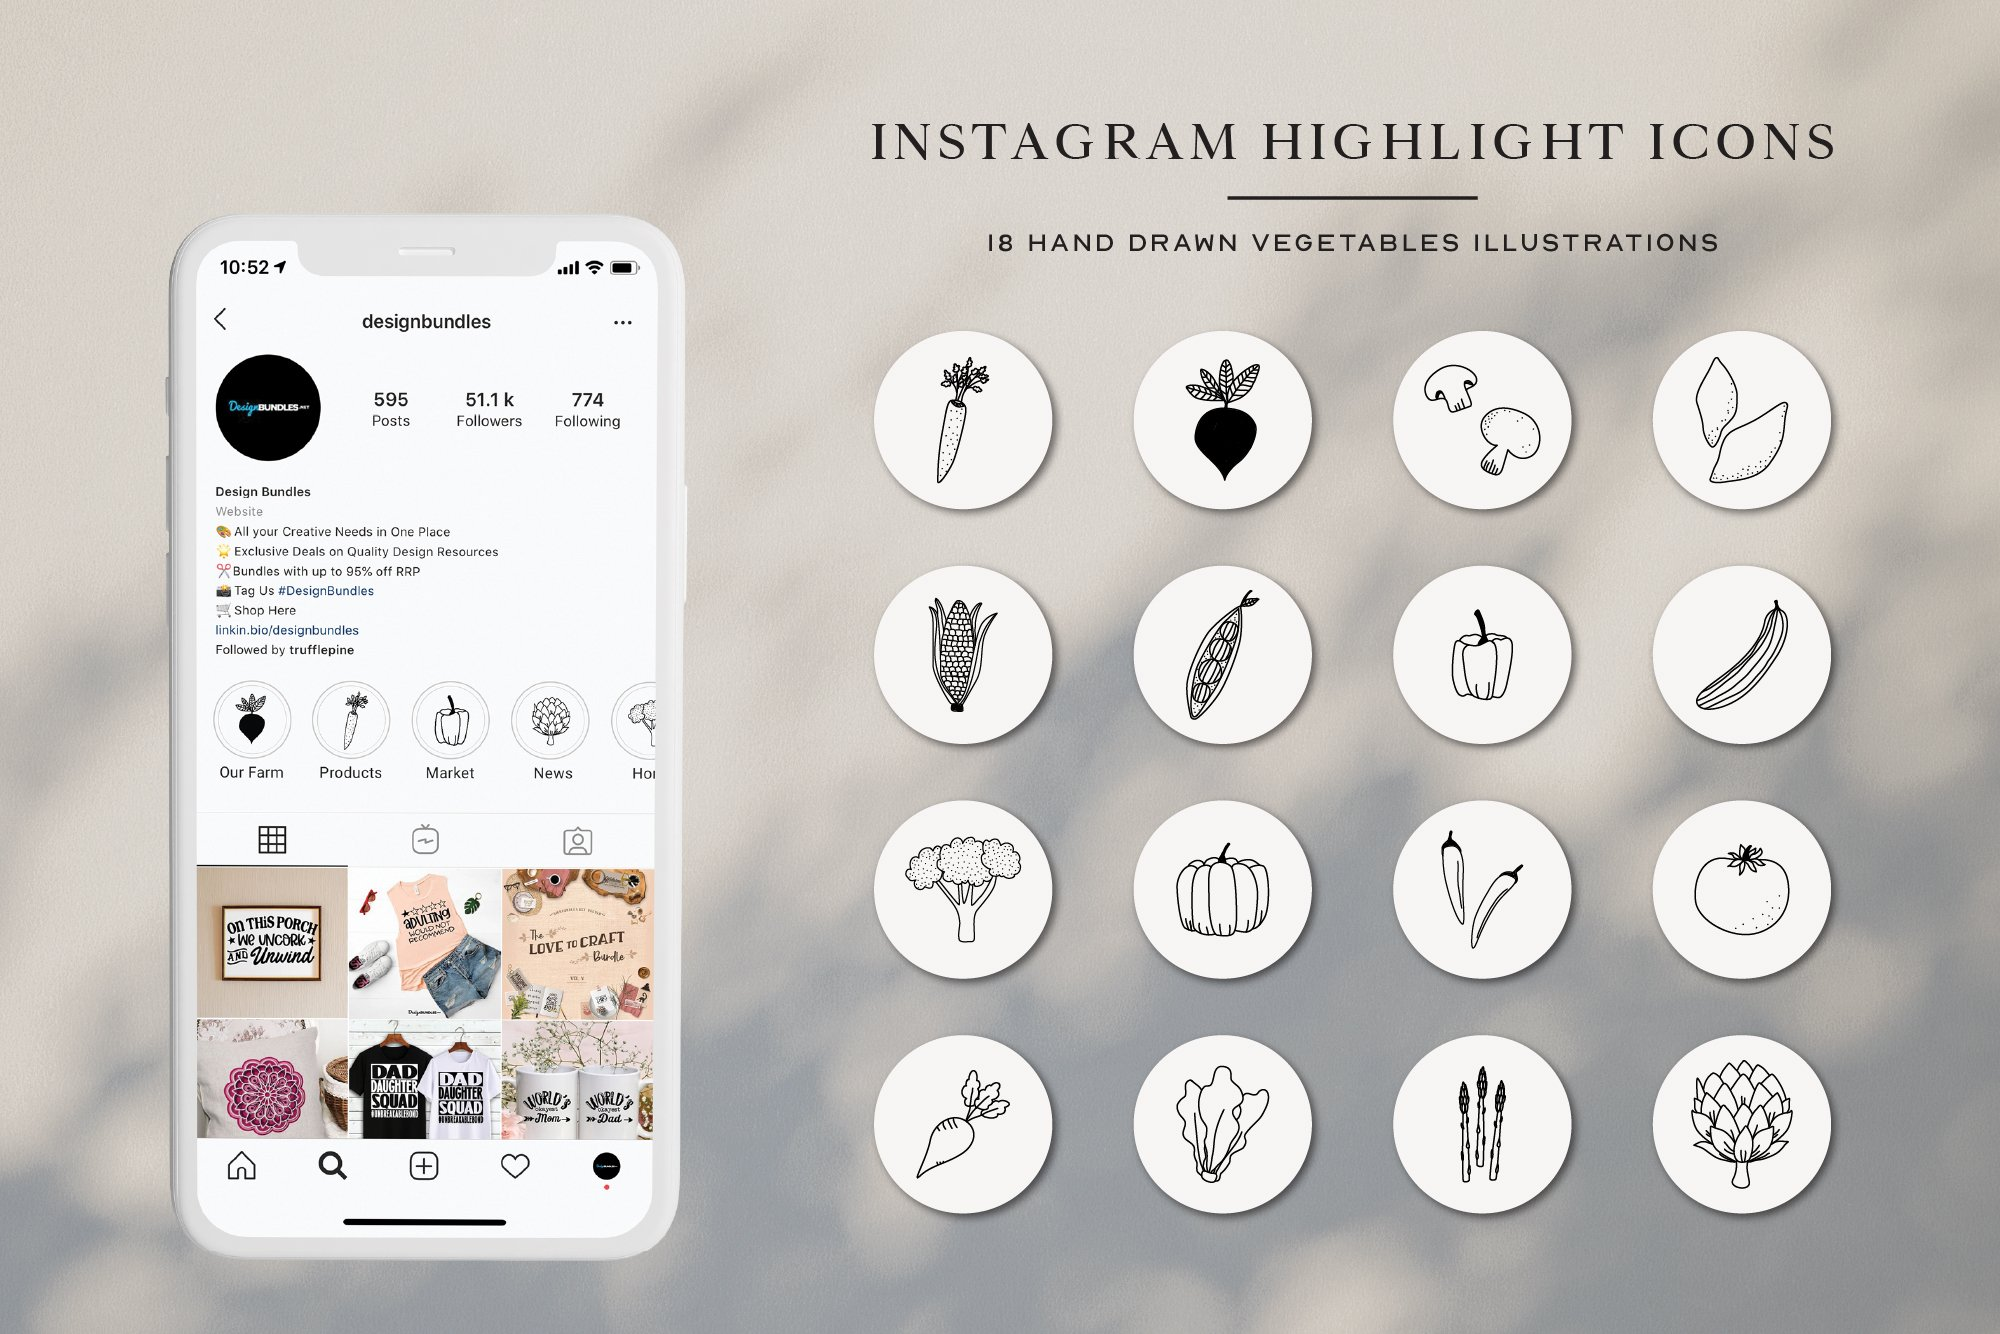 Instagram Vegetables Highlights Icons | Instagram Story Cove example image 1